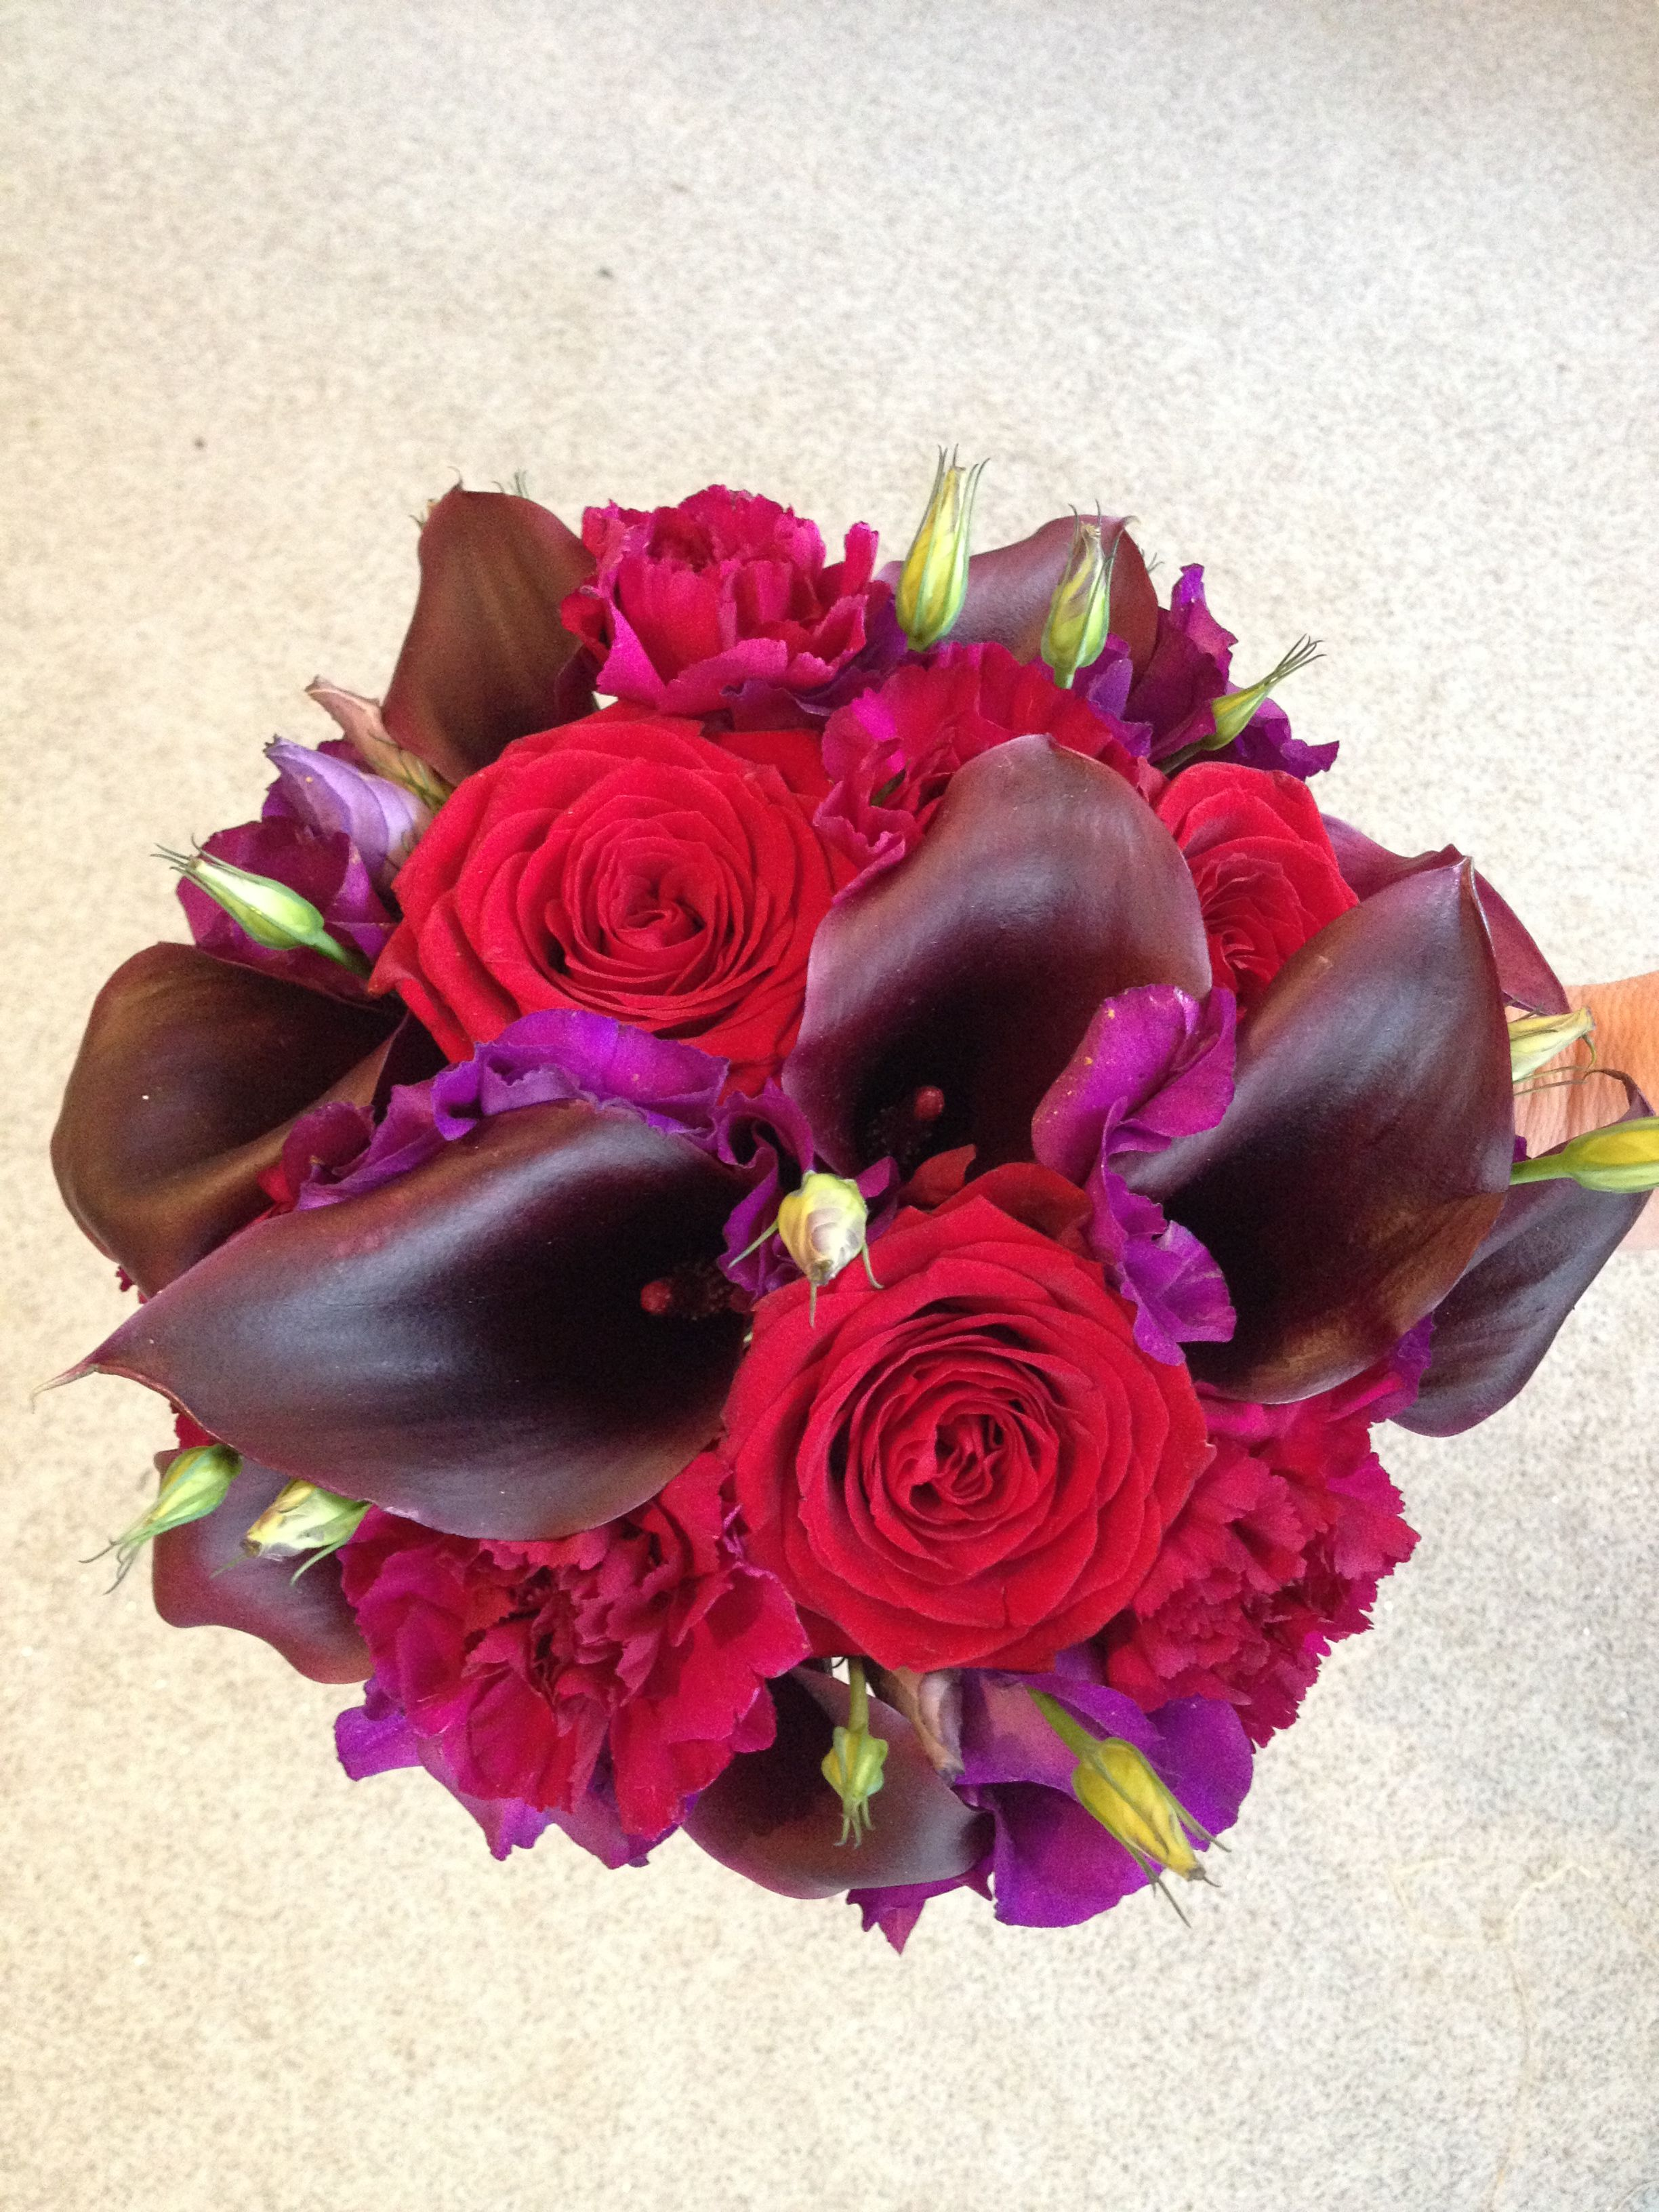 A Striking Passionflower Wedding Bouquet With Calla Lilies And Red